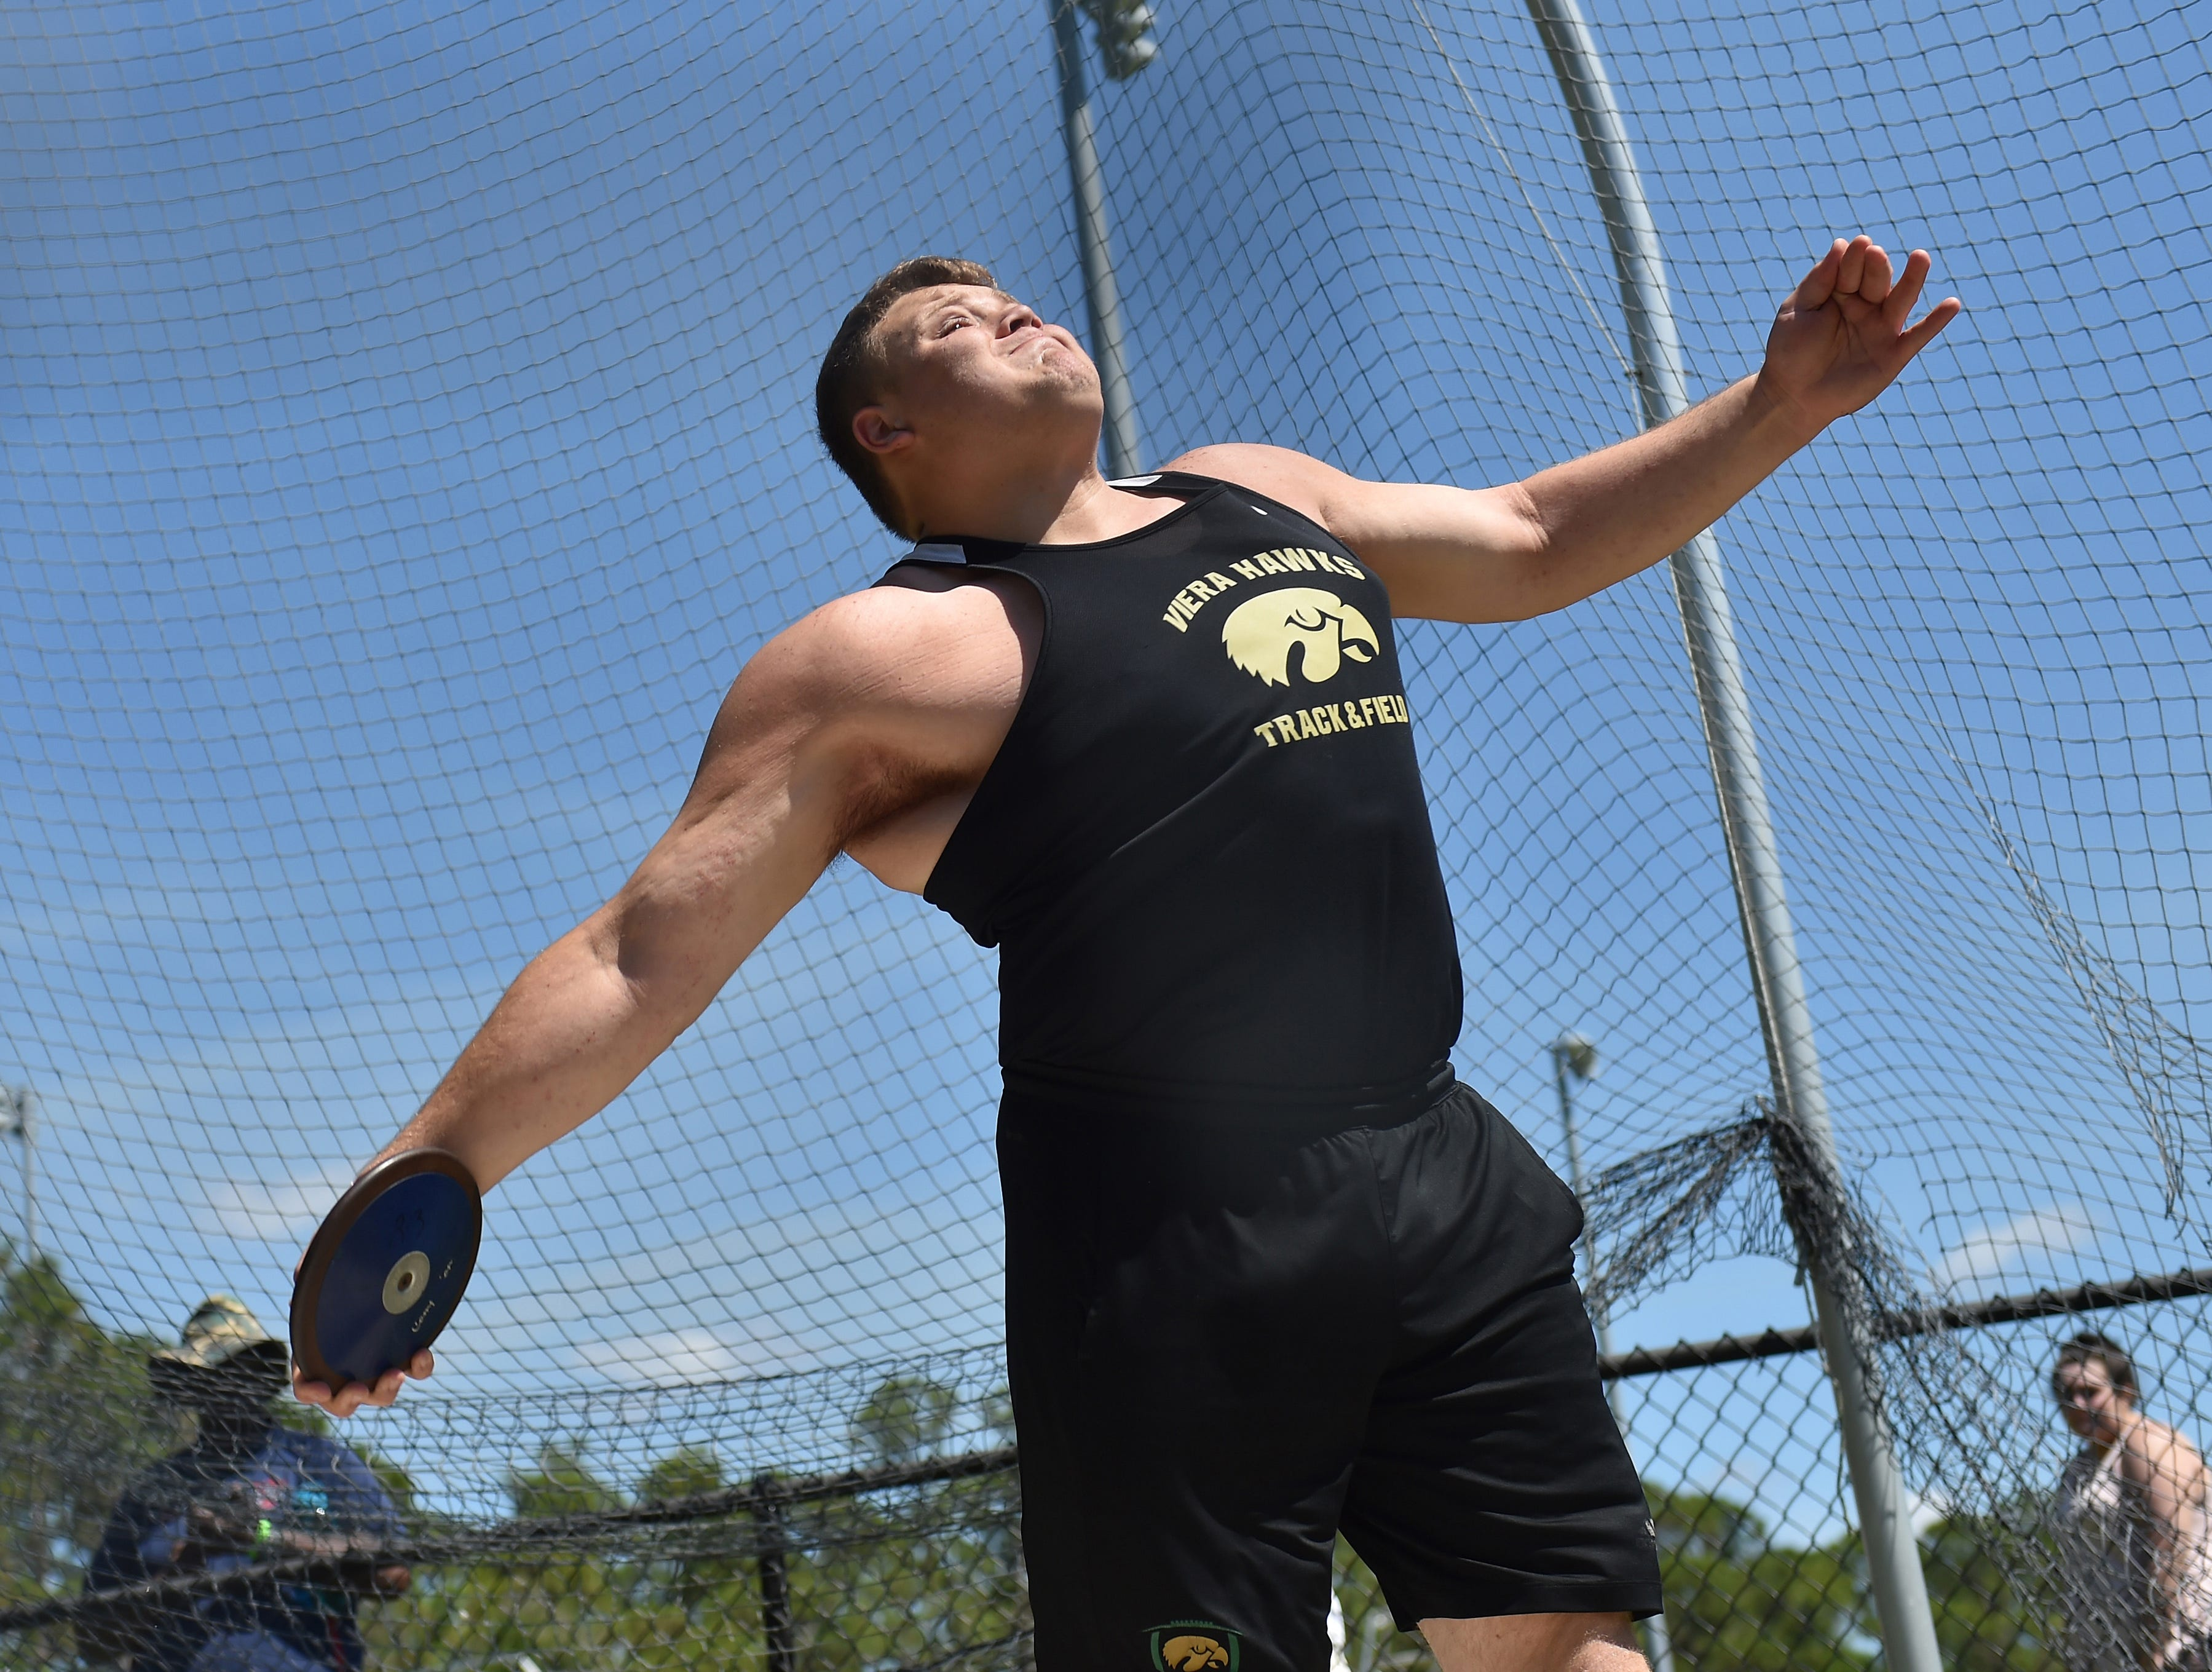 Giovanni Allen, of Viera High School competes in the Boy's Discus preliminary round with a distance of 32.91 feet during the Region 4-3A Track and Field Meet at South Fork High School on Thursday, April 26, 2018, in Stuart.